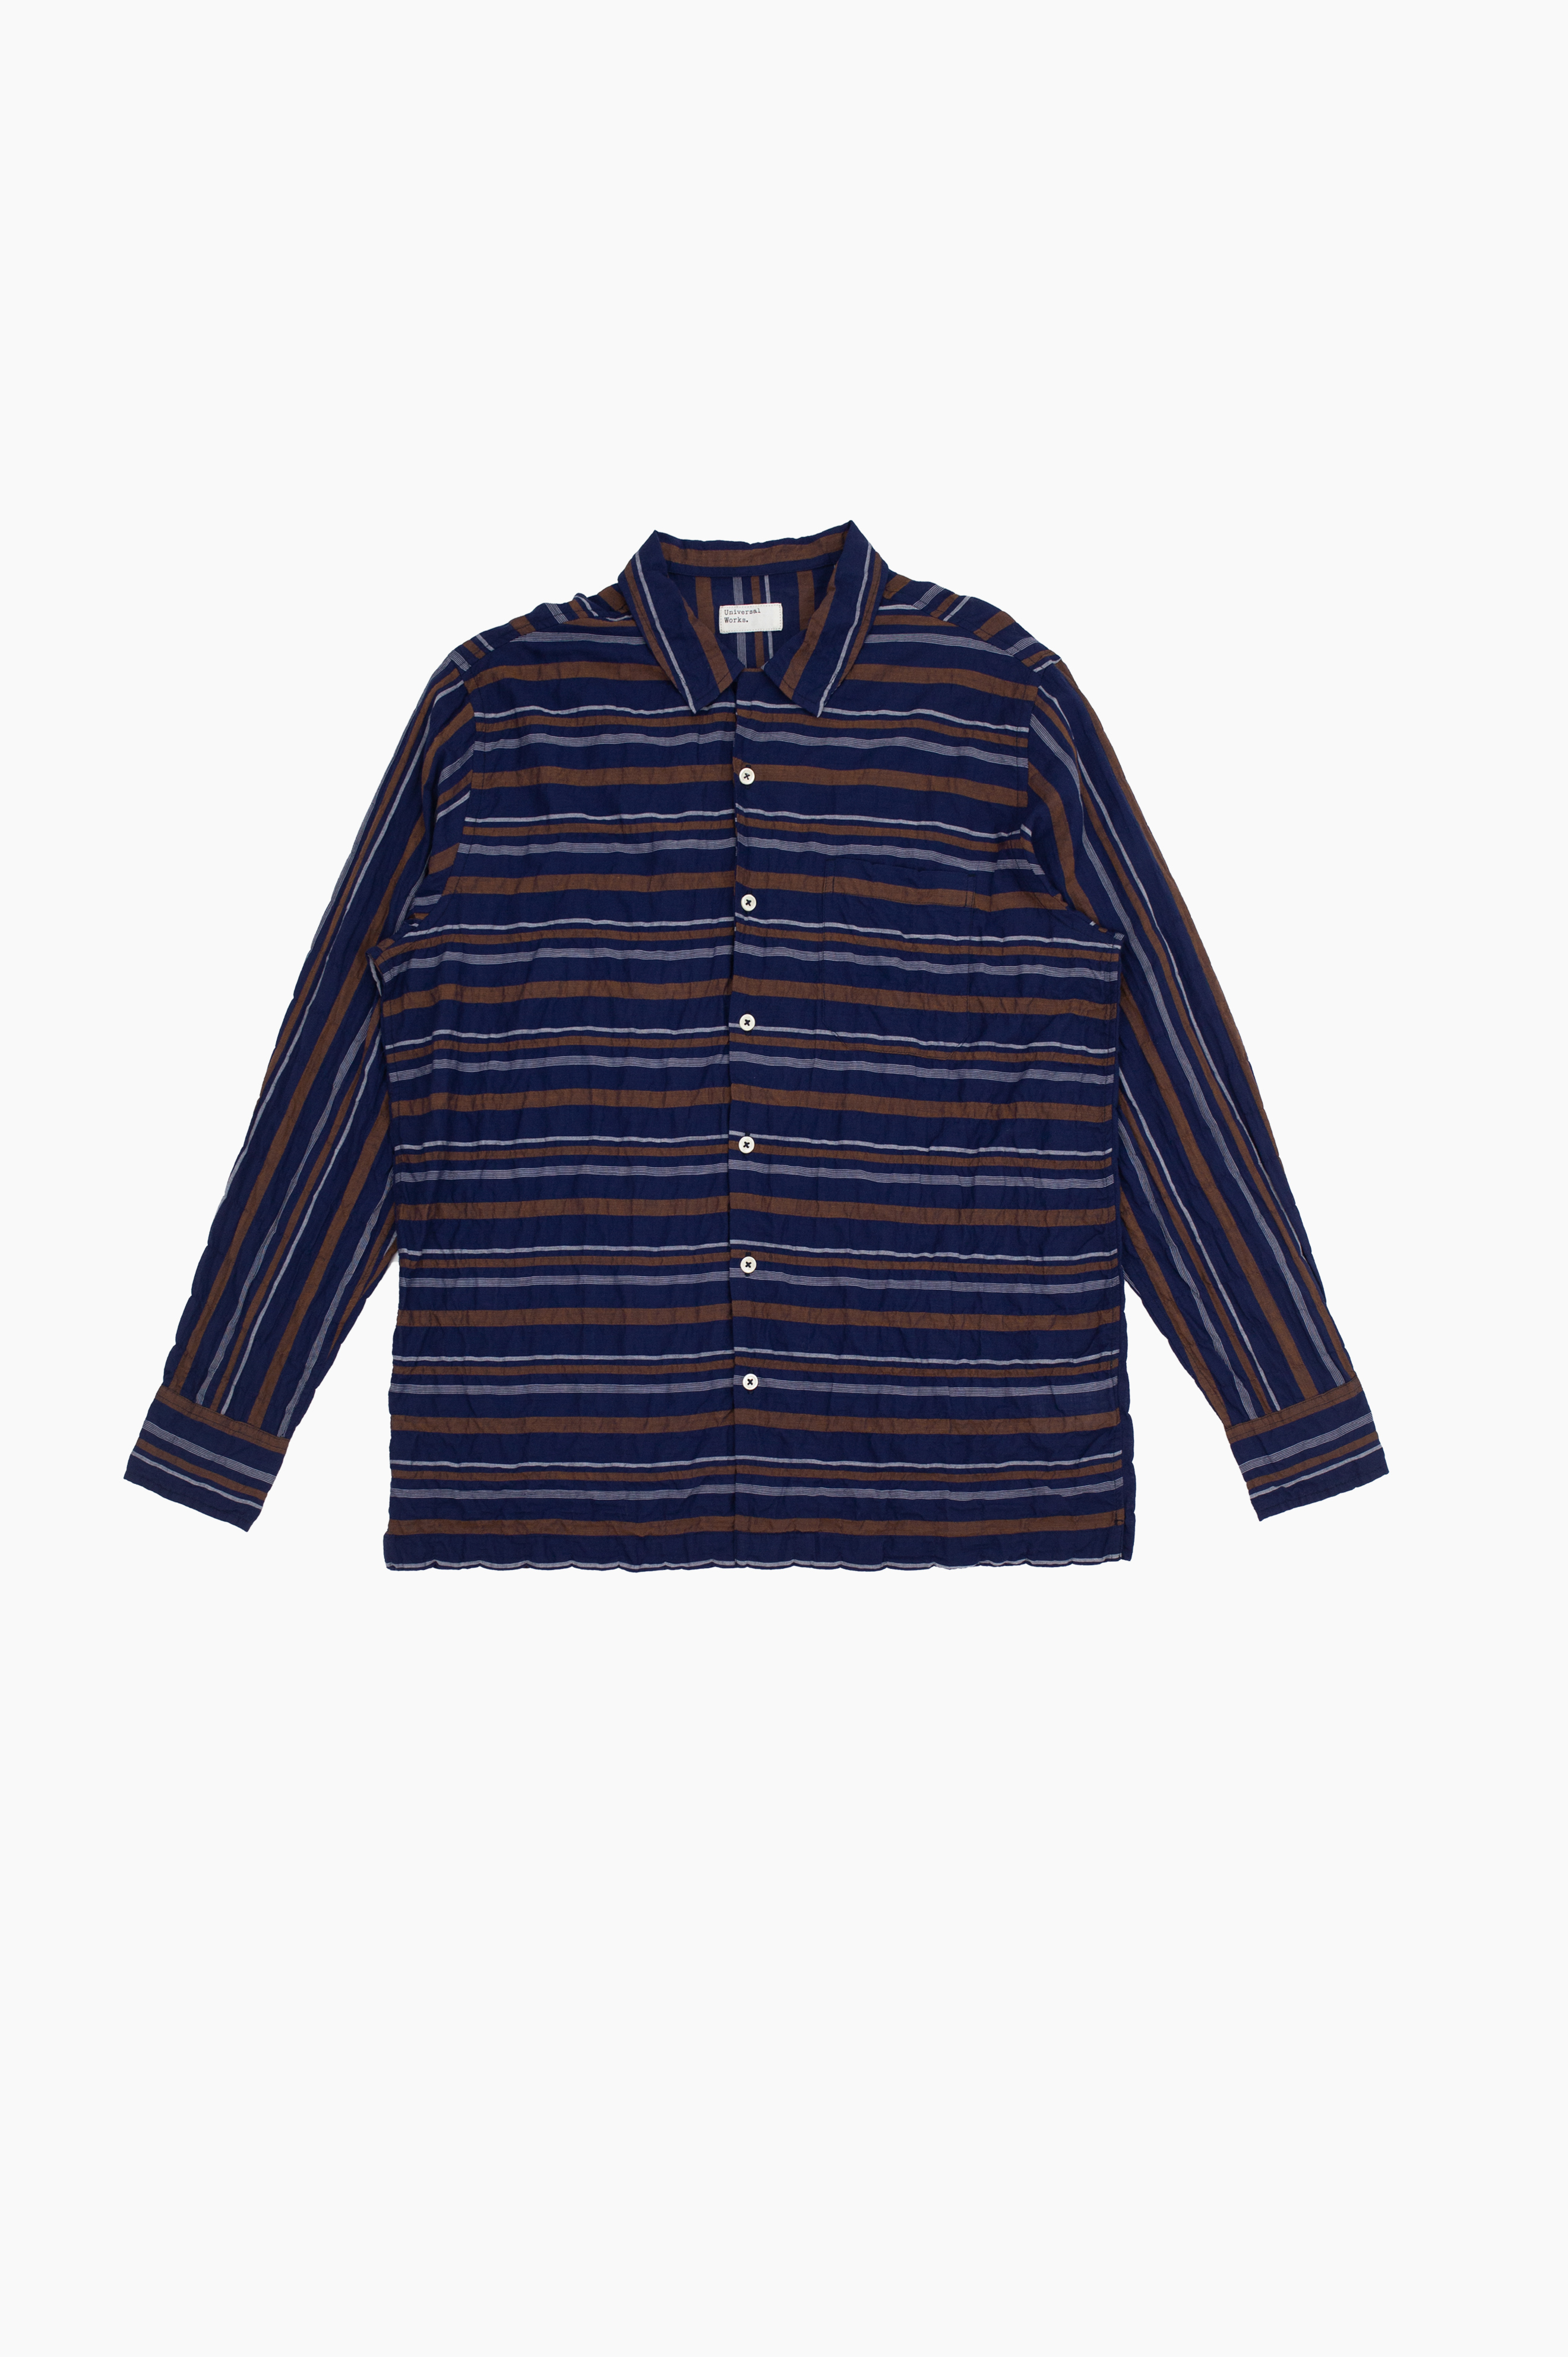 Garage Shirt Navy Acapulco Stripes